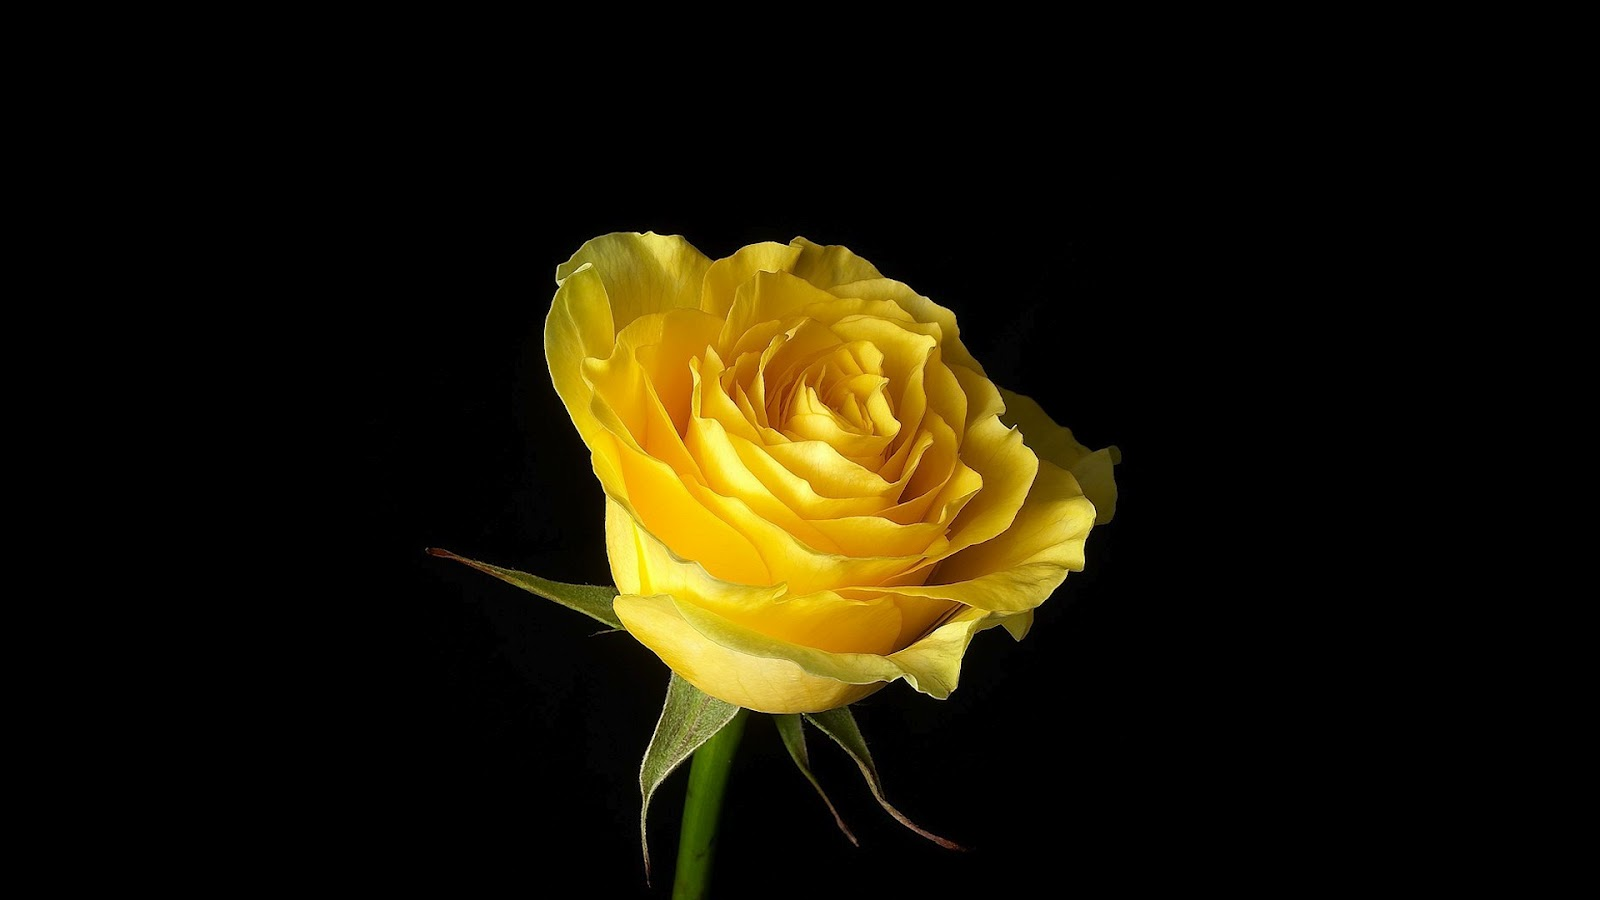 Yellow Rose On Black Background - The Best Place to Enjoy ...